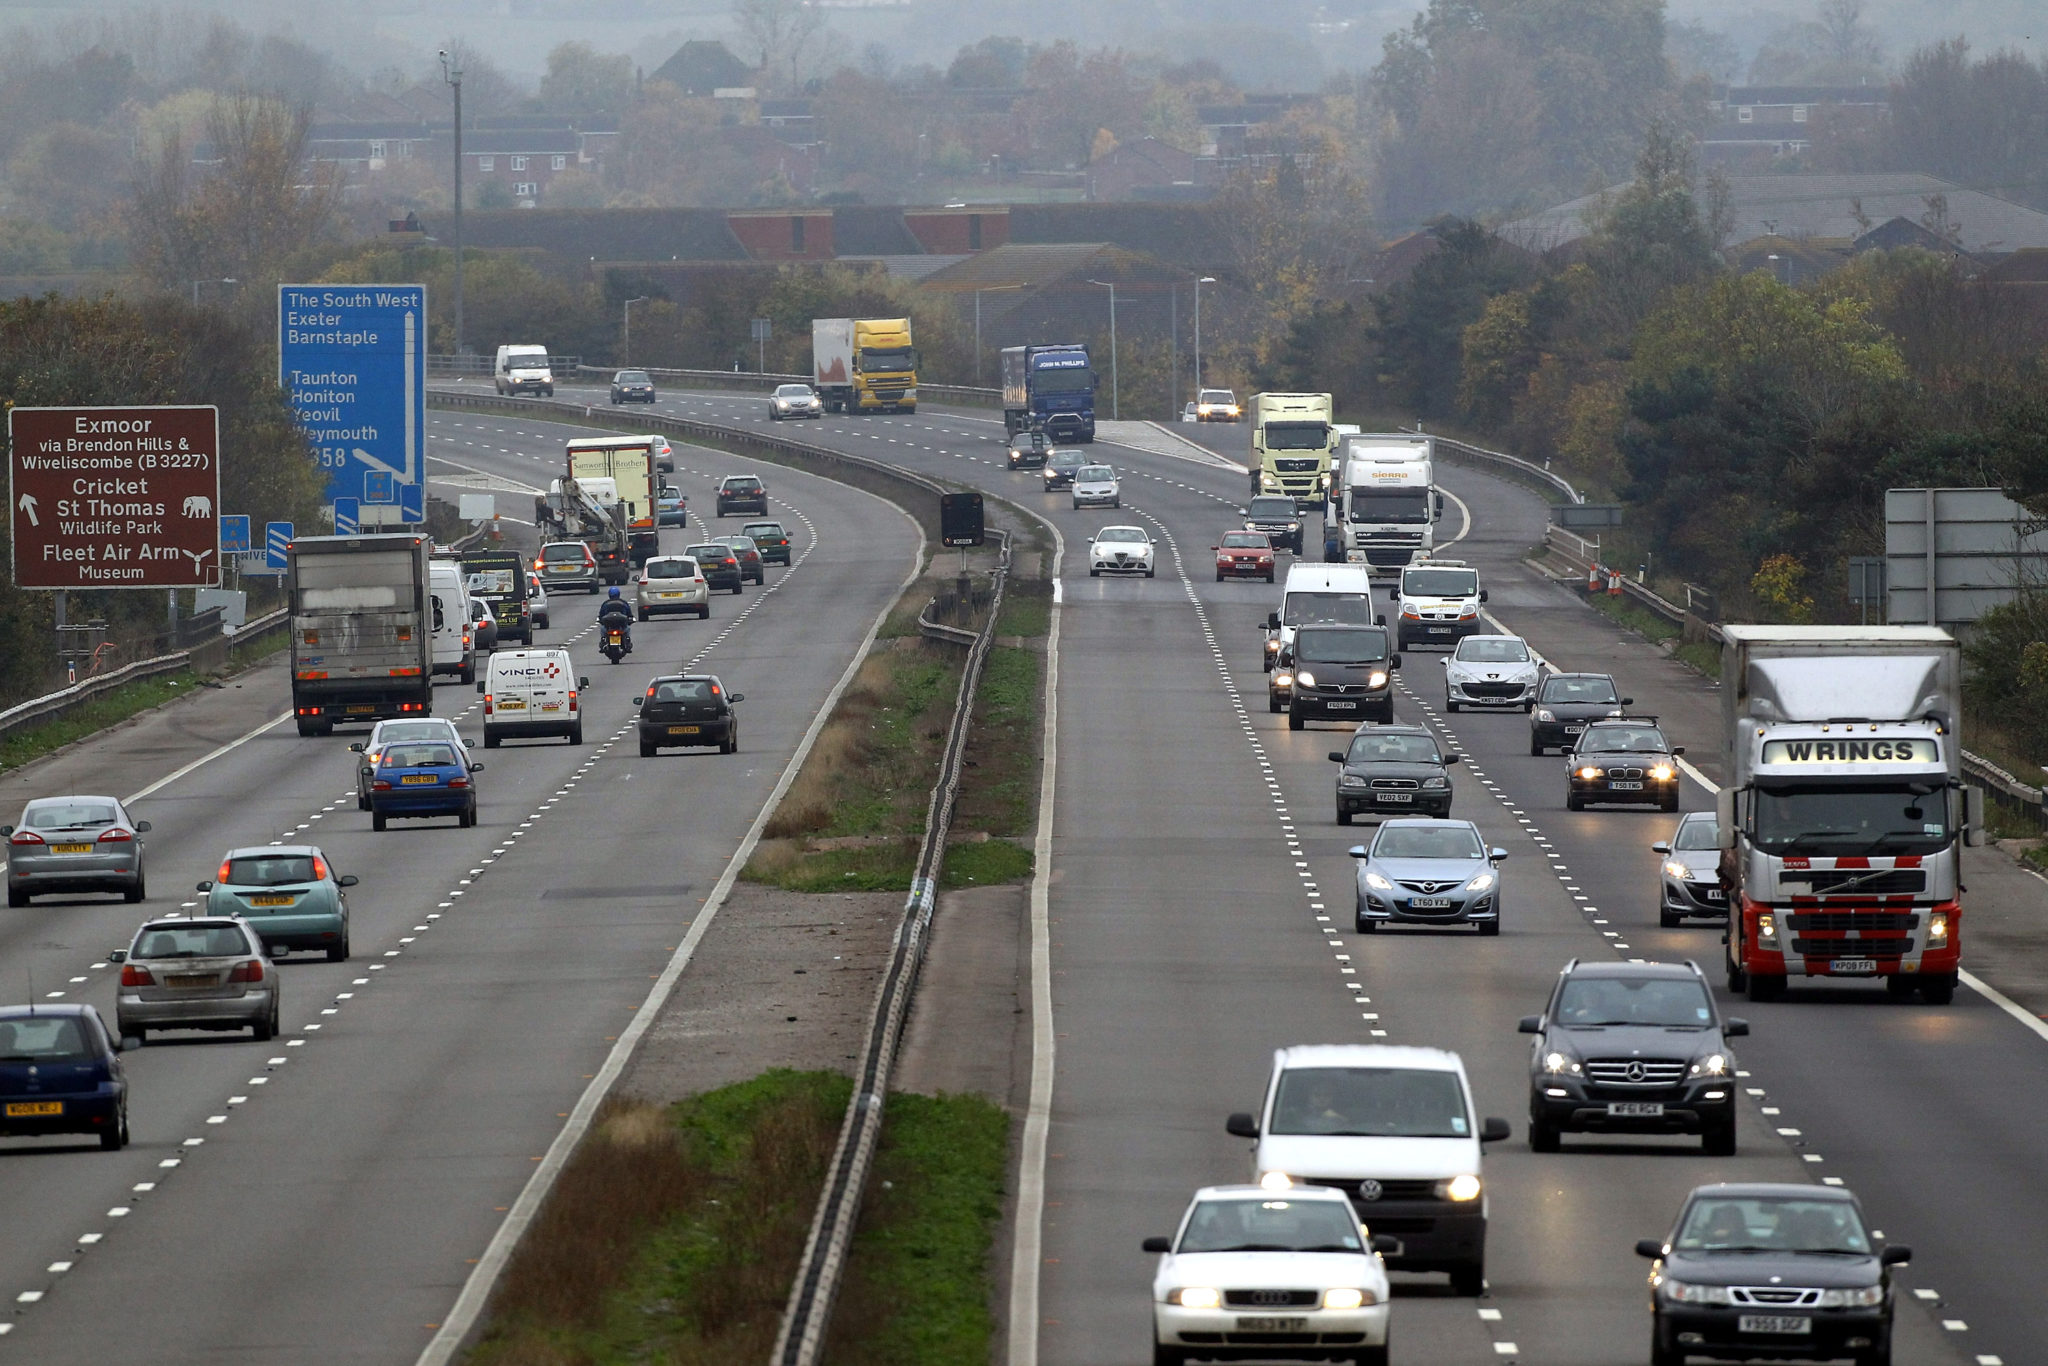 The Aftermath Of The M5 Crash